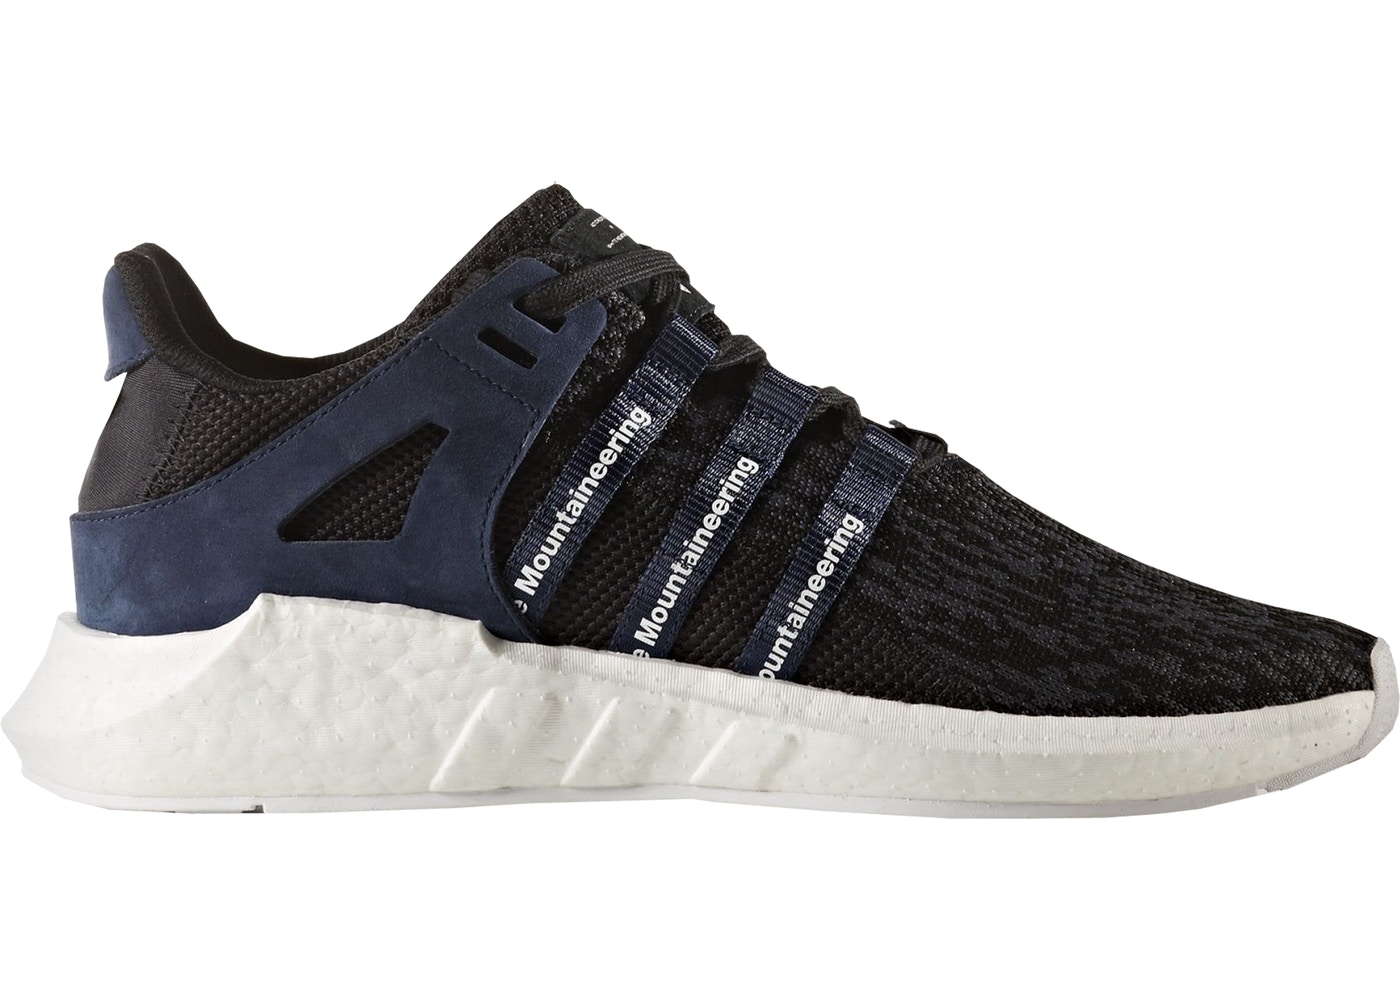 ceb2d4394f0d adidas EQT Support Future White Mountaineering Navy - BB3127